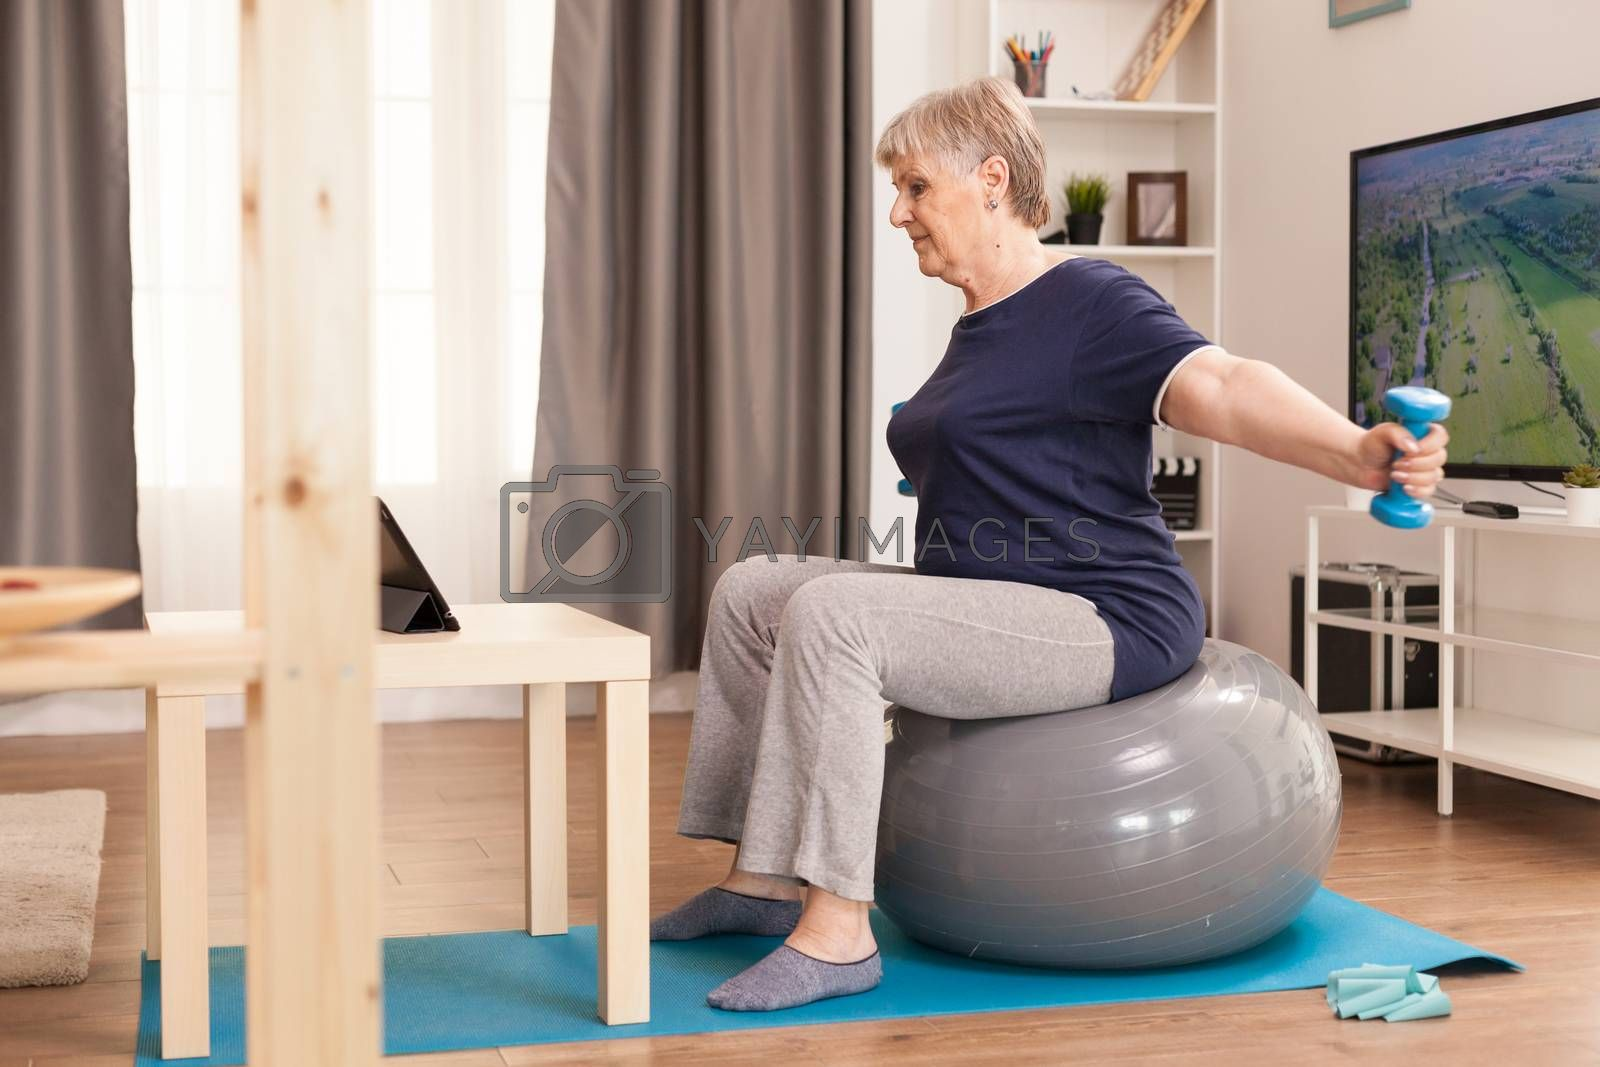 Grandma doing sports in pajamas with personal trainer online. Old person pensioner online internet exercise training at home sport activity with dumbbell, resistance band, swiss ball at elderly retirement age